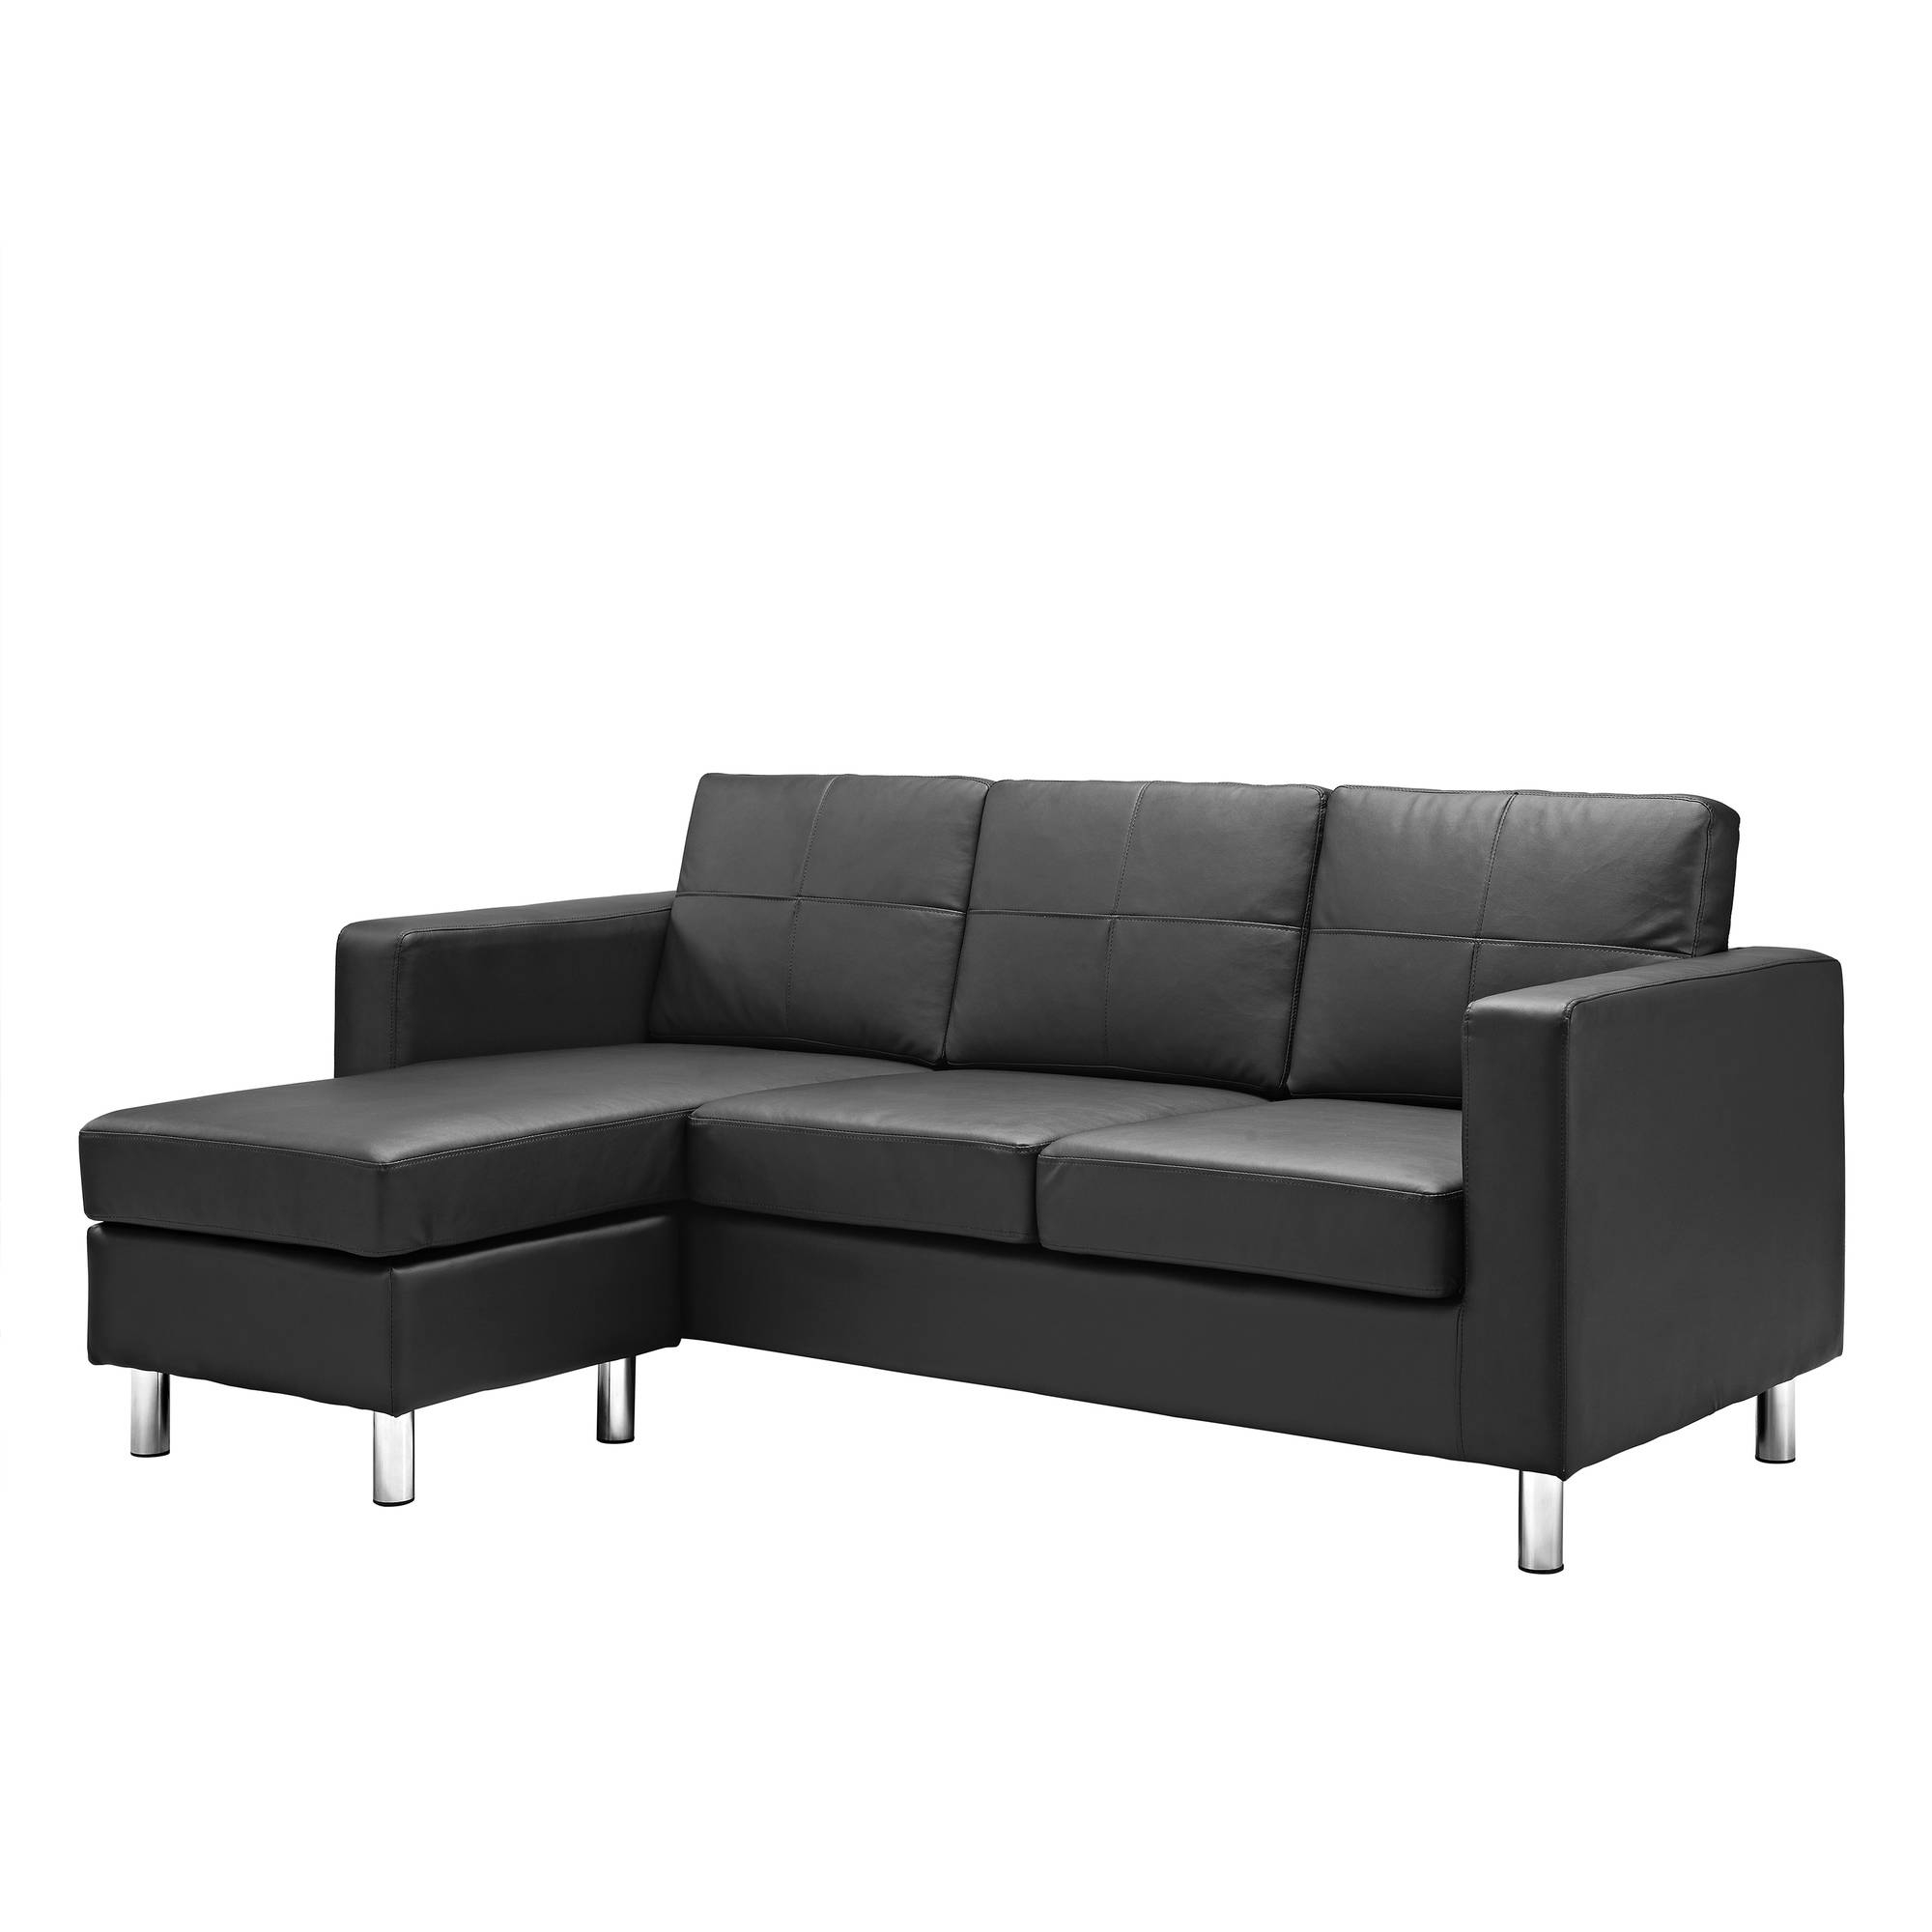 Favorite Sectional Sofas At Walmart Within Dorel Living Small Spaces Configurable Sectional Sofa, Multiple (View 3 of 20)